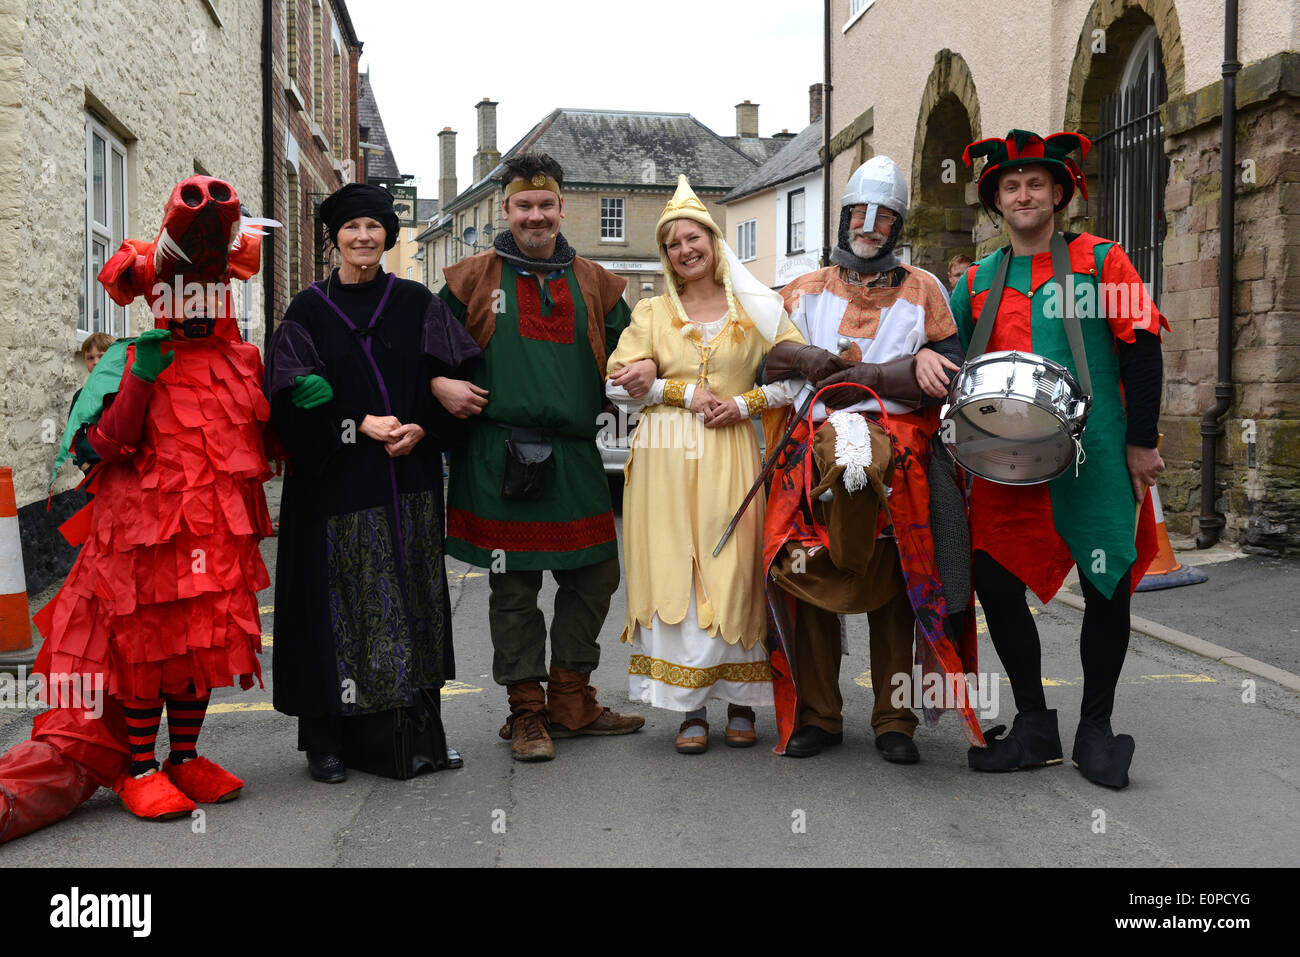 Mummers Play performing The Green Man Festival at Clun in Shropshire Jean Smith, Sue Blackman, Ben Christie, Tracey Hayward, Ton - Stock Image